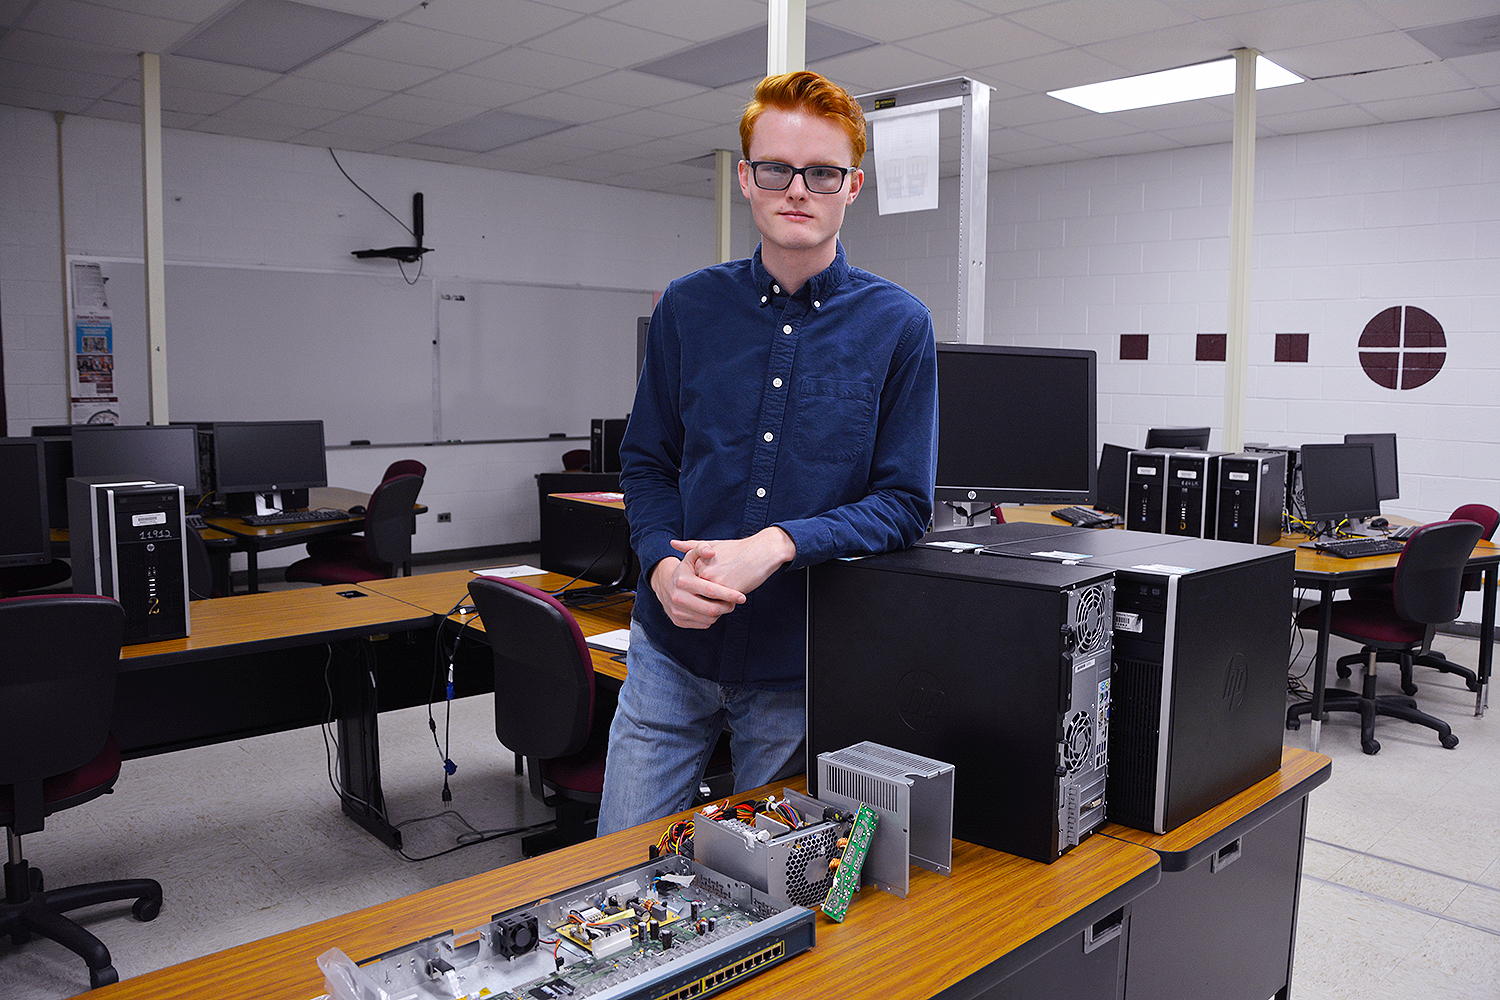 Hunter O'Neal stands in the computer lab at RCC